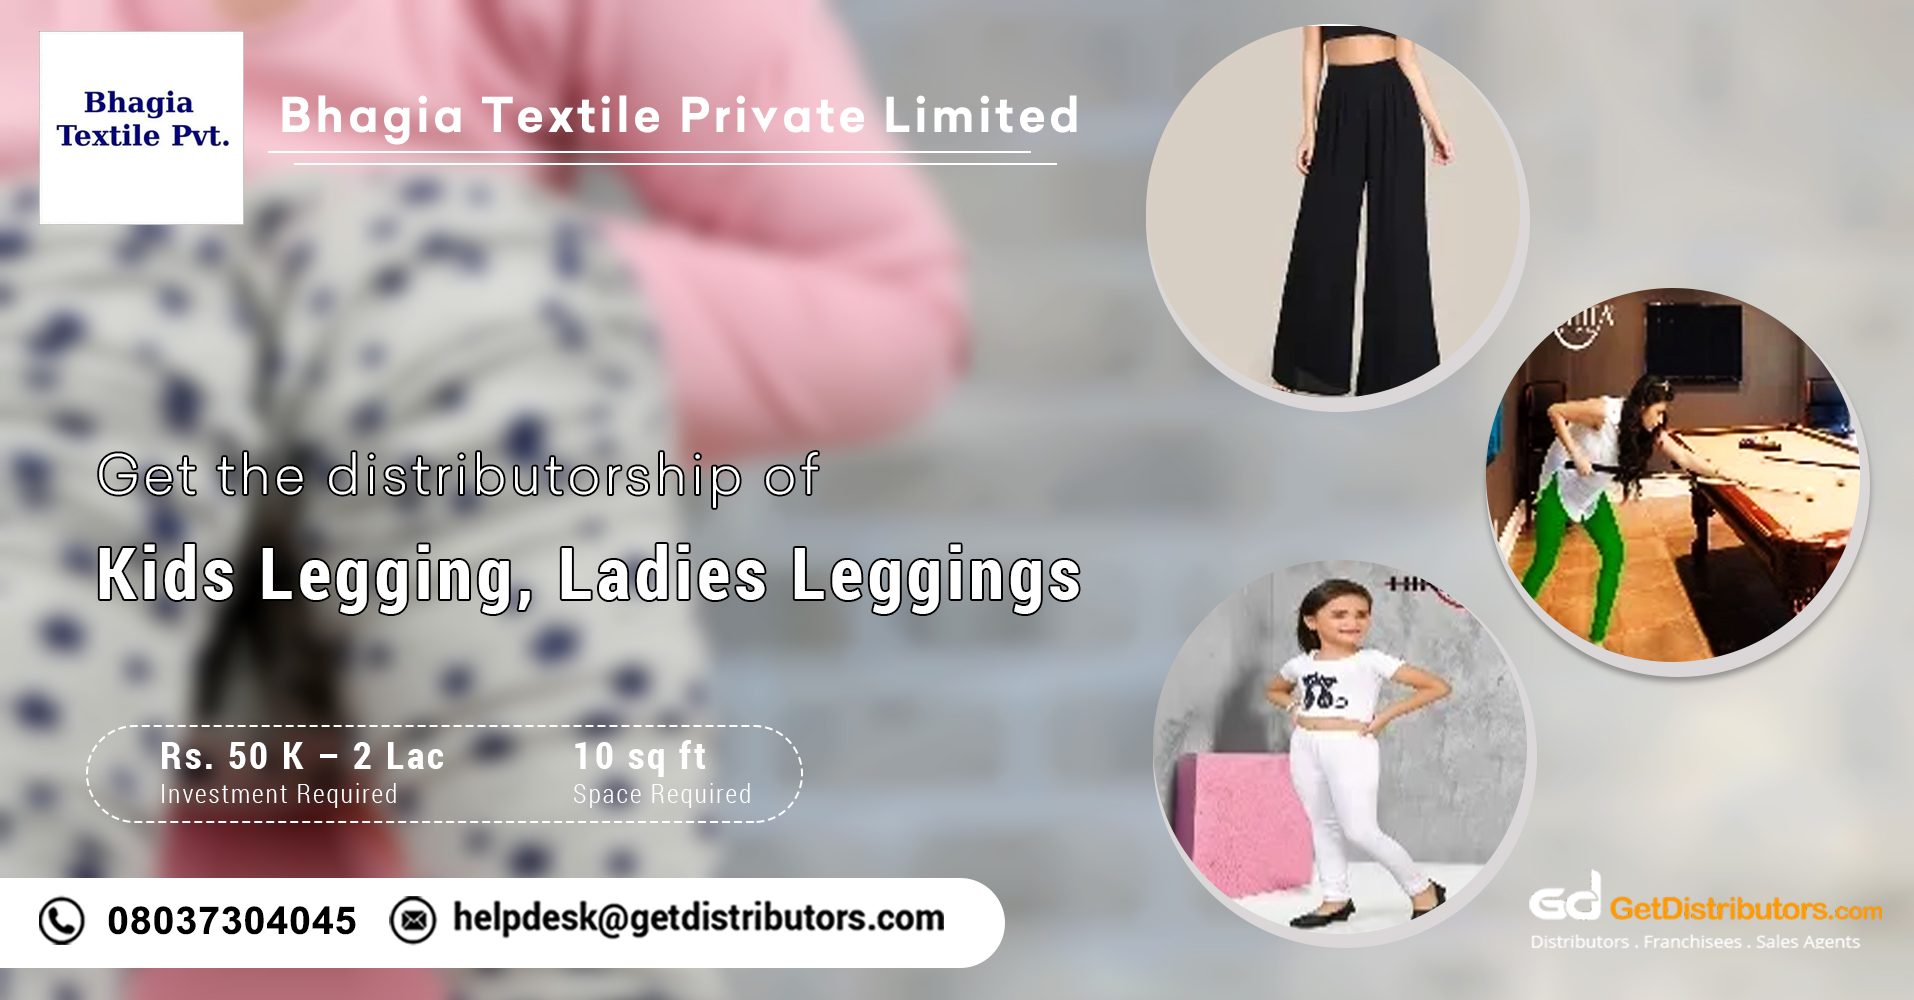 Fashionable leggings distributorship at affordable prices